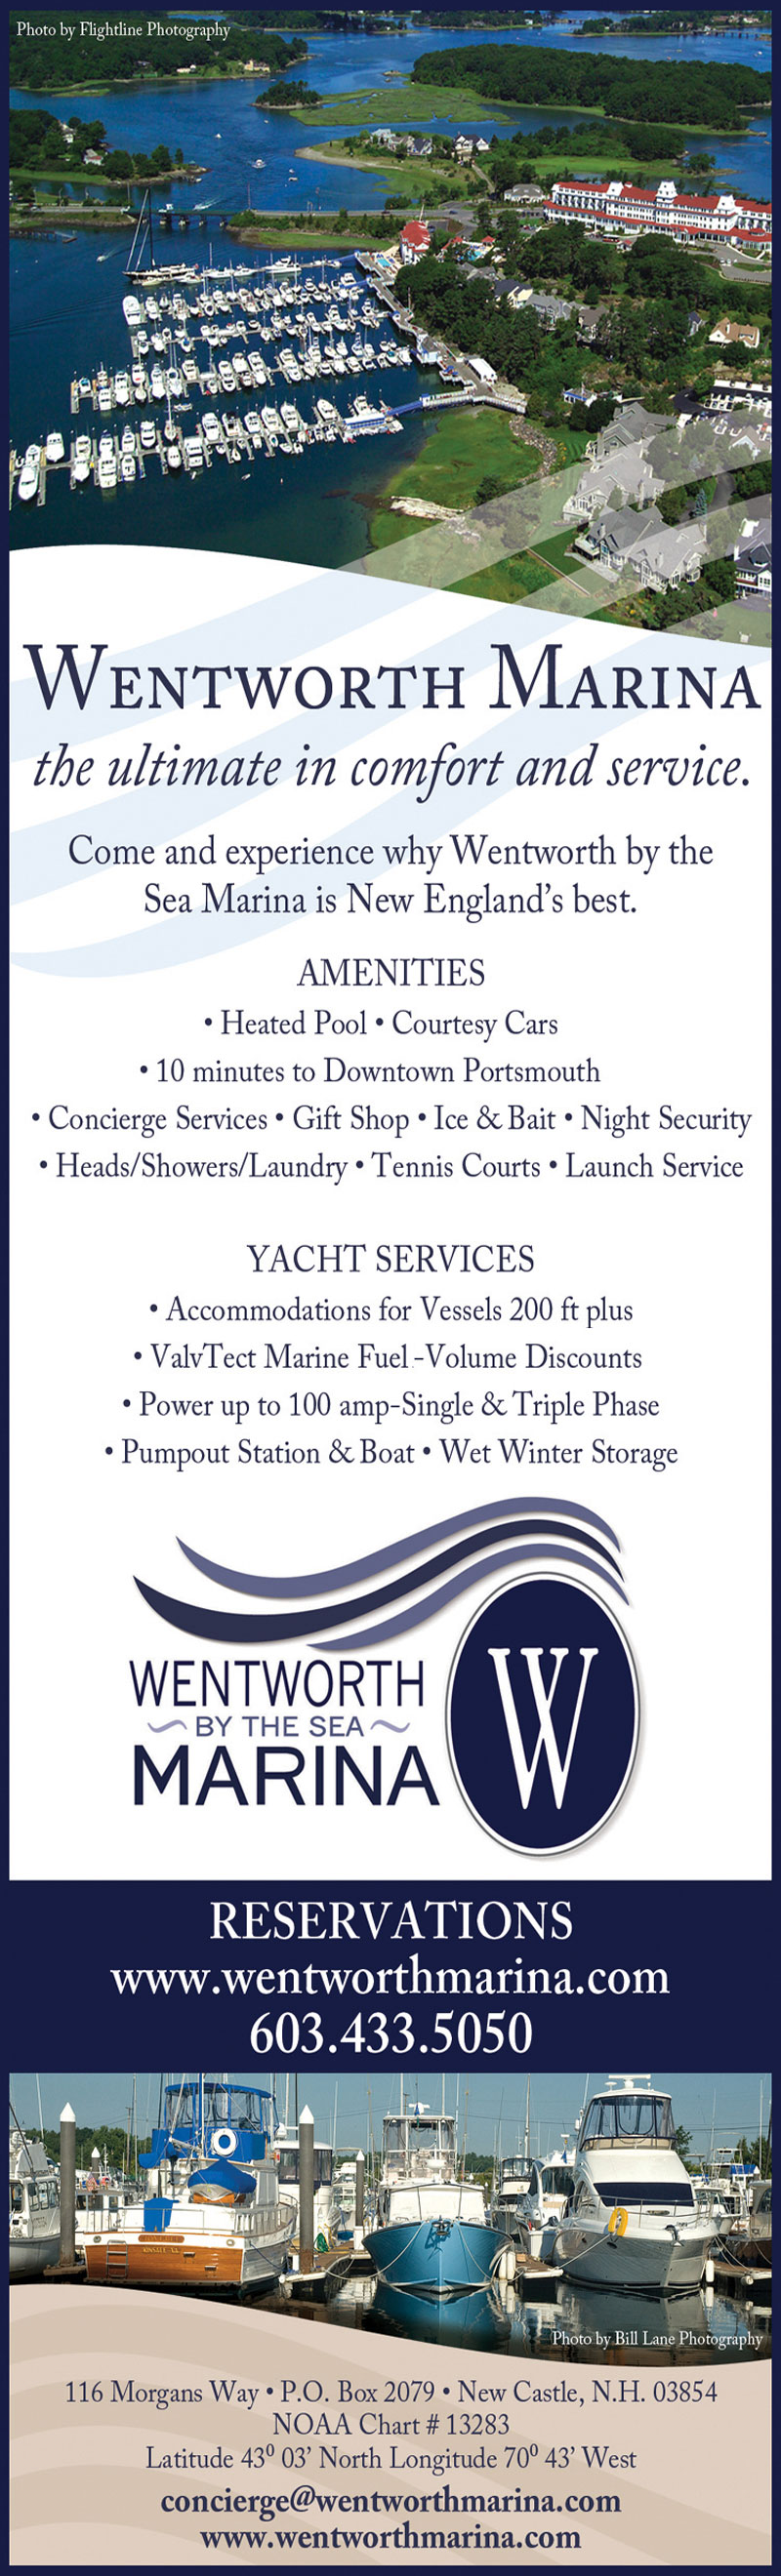 Wentworth by the Sea Marina Advertisement